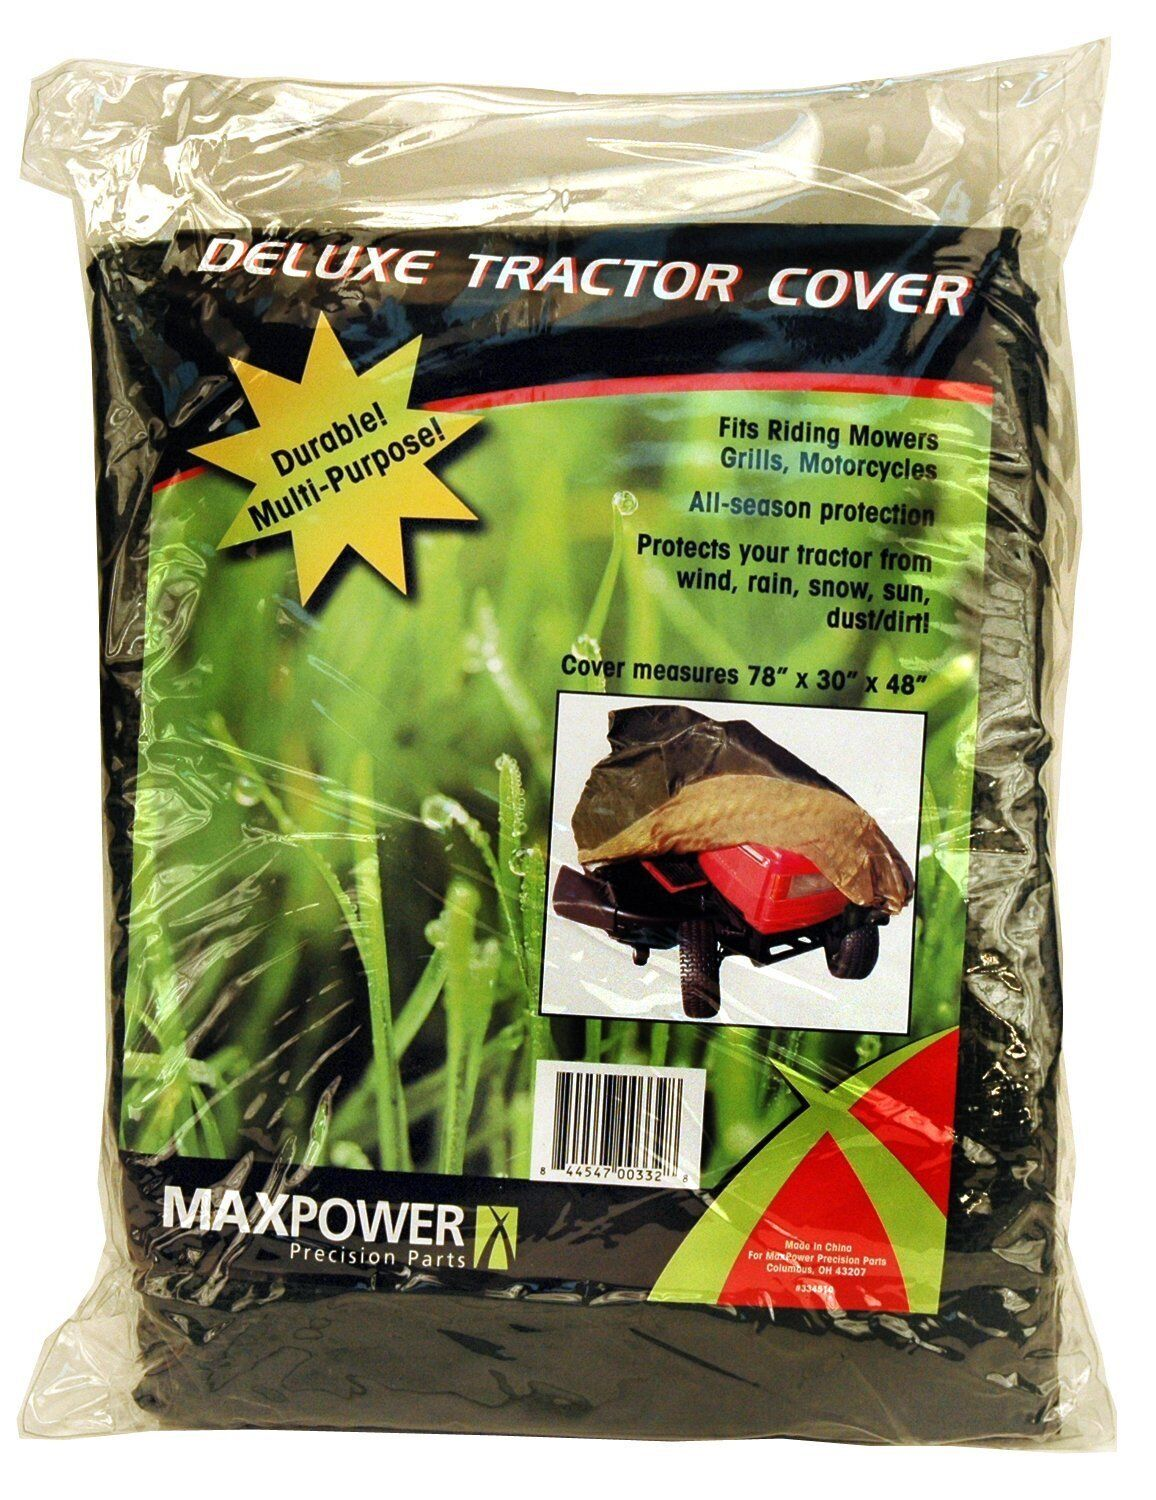 new 334510 deluxe riding lawn mower cover